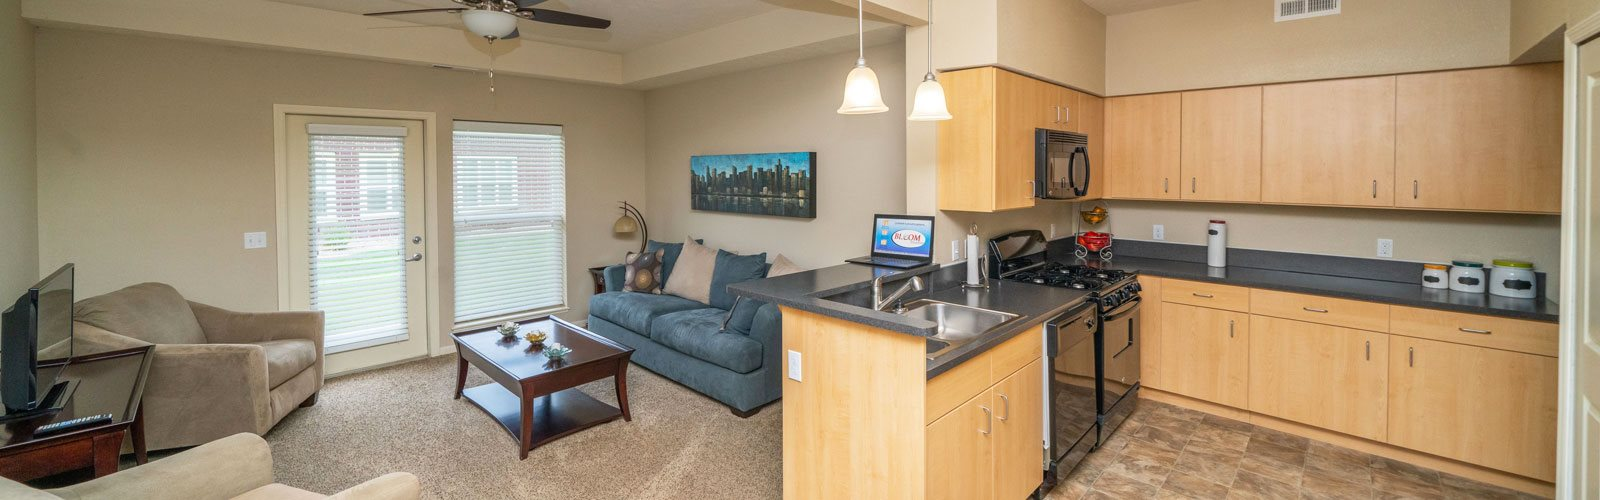 Kitchen And Living View at Lynbrook Apartment Homes and Townhomes, Elkhorn, NE